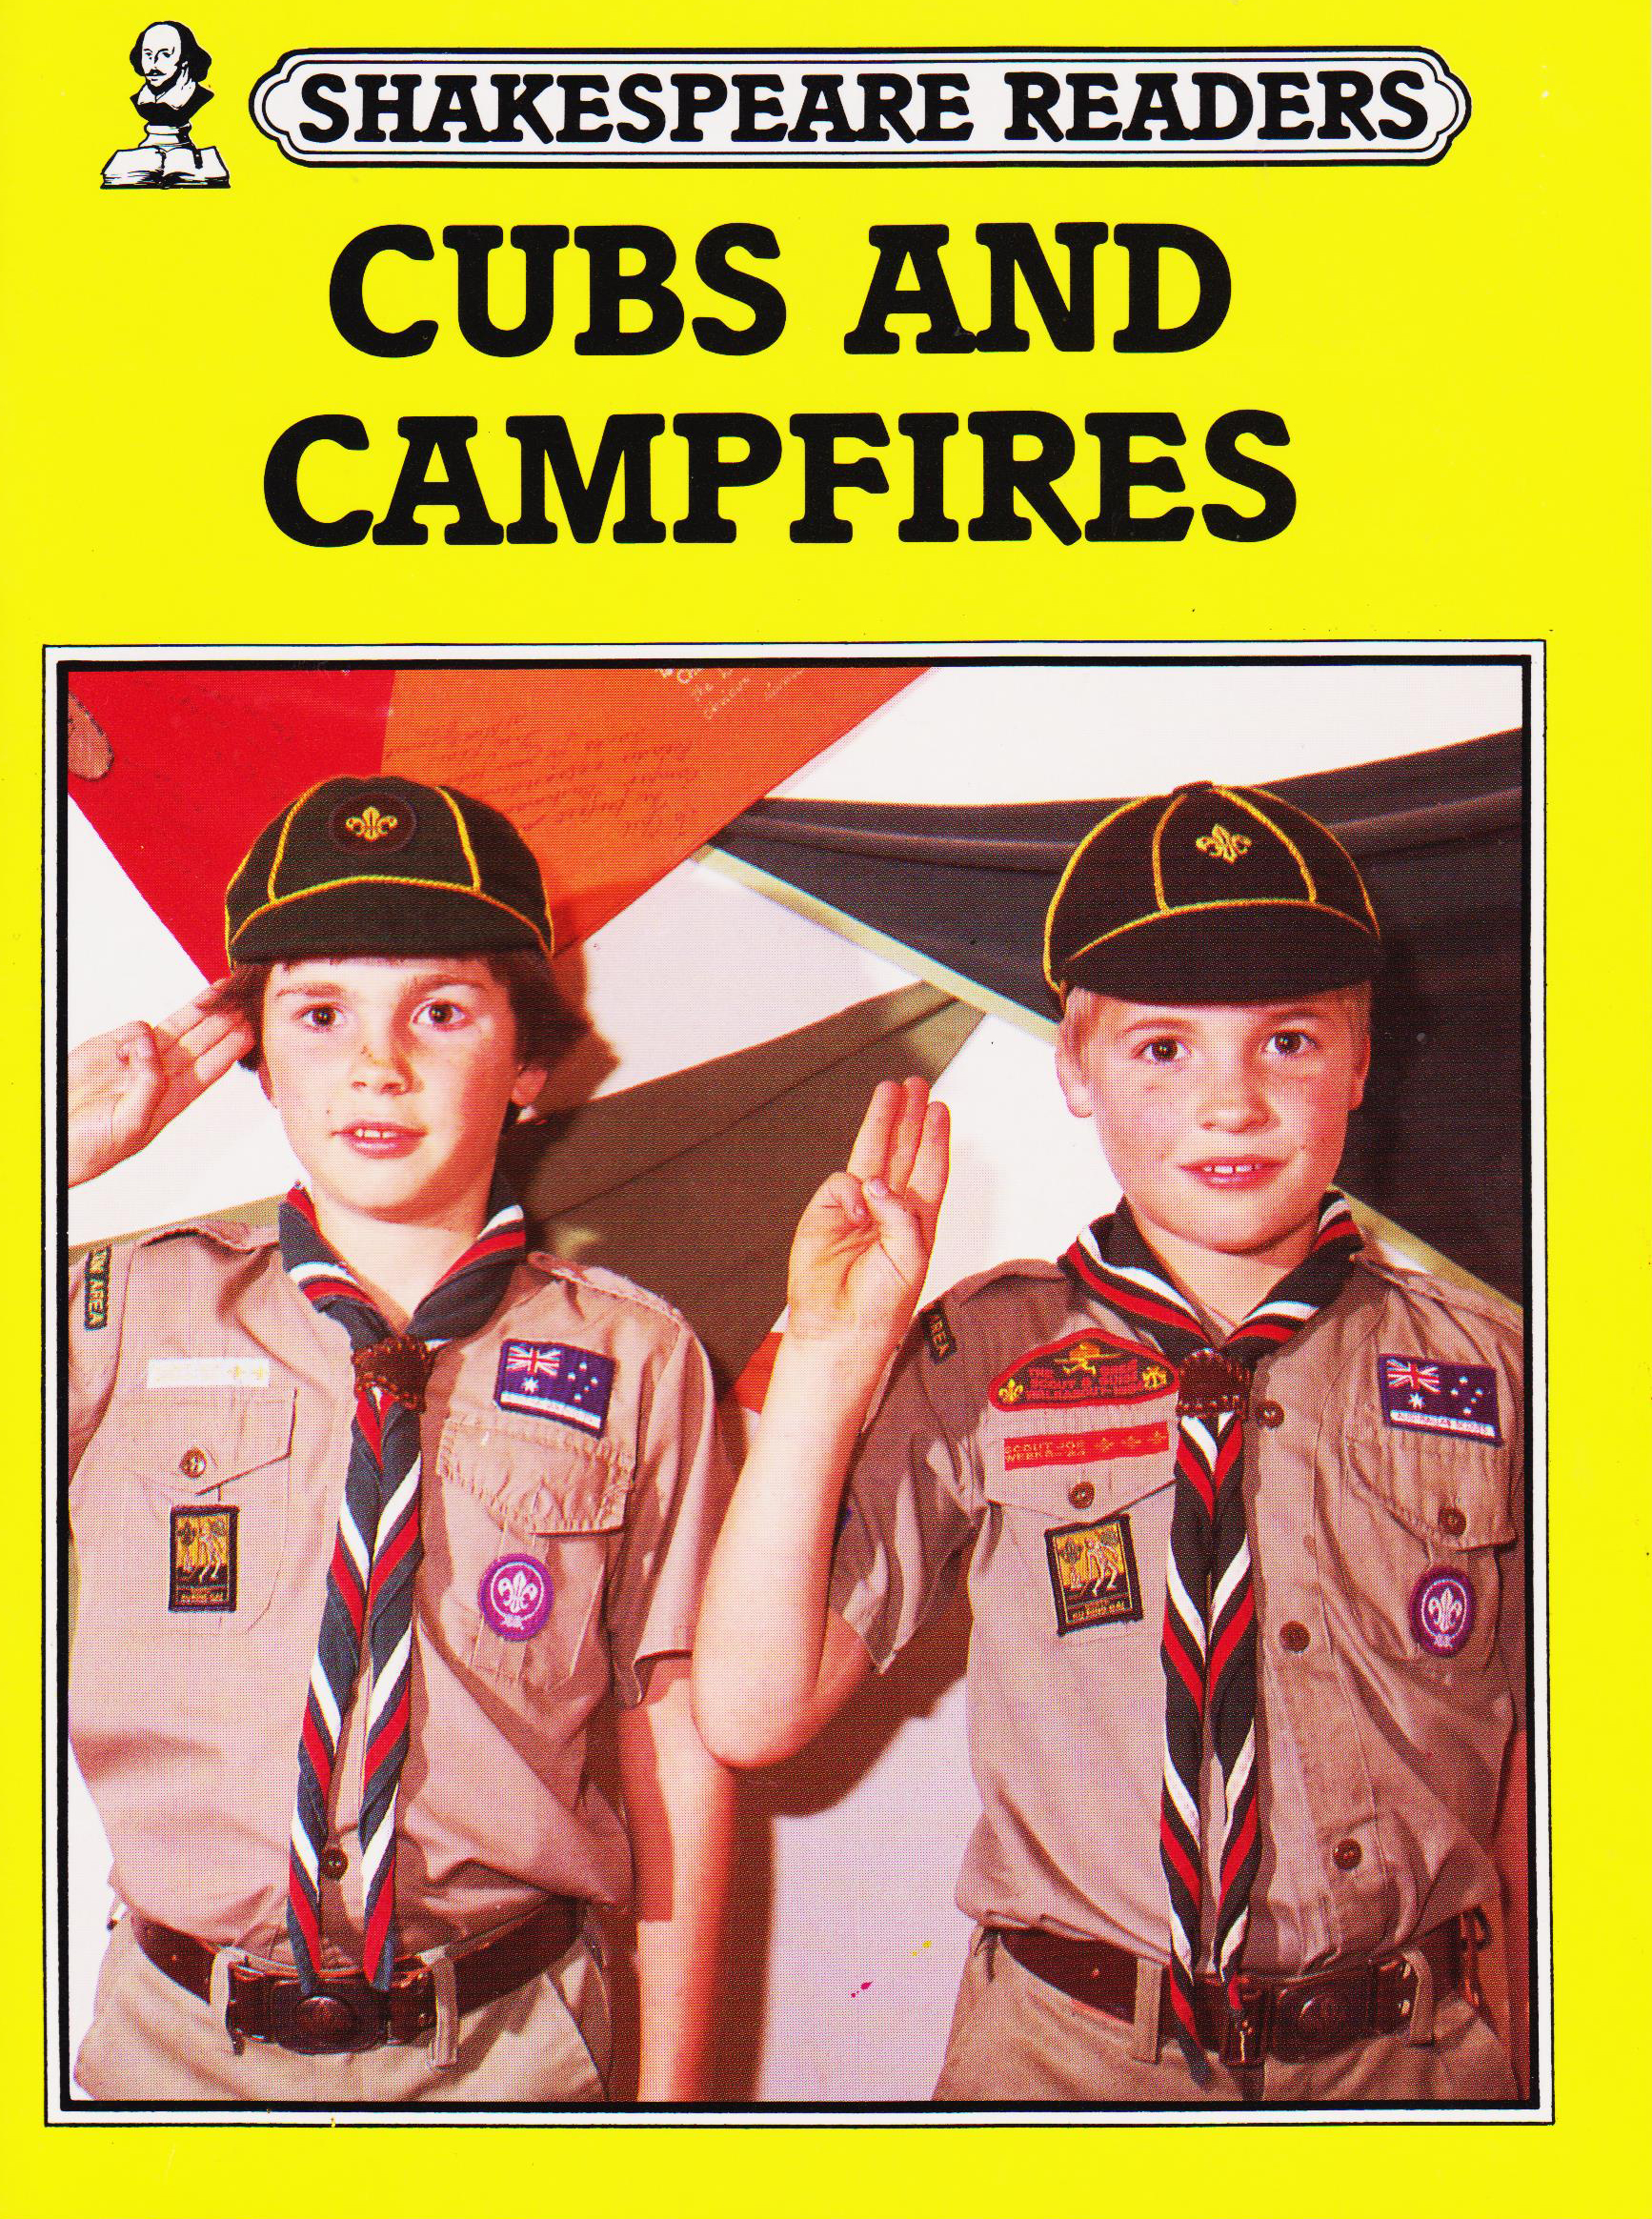 Cubs and Campfires